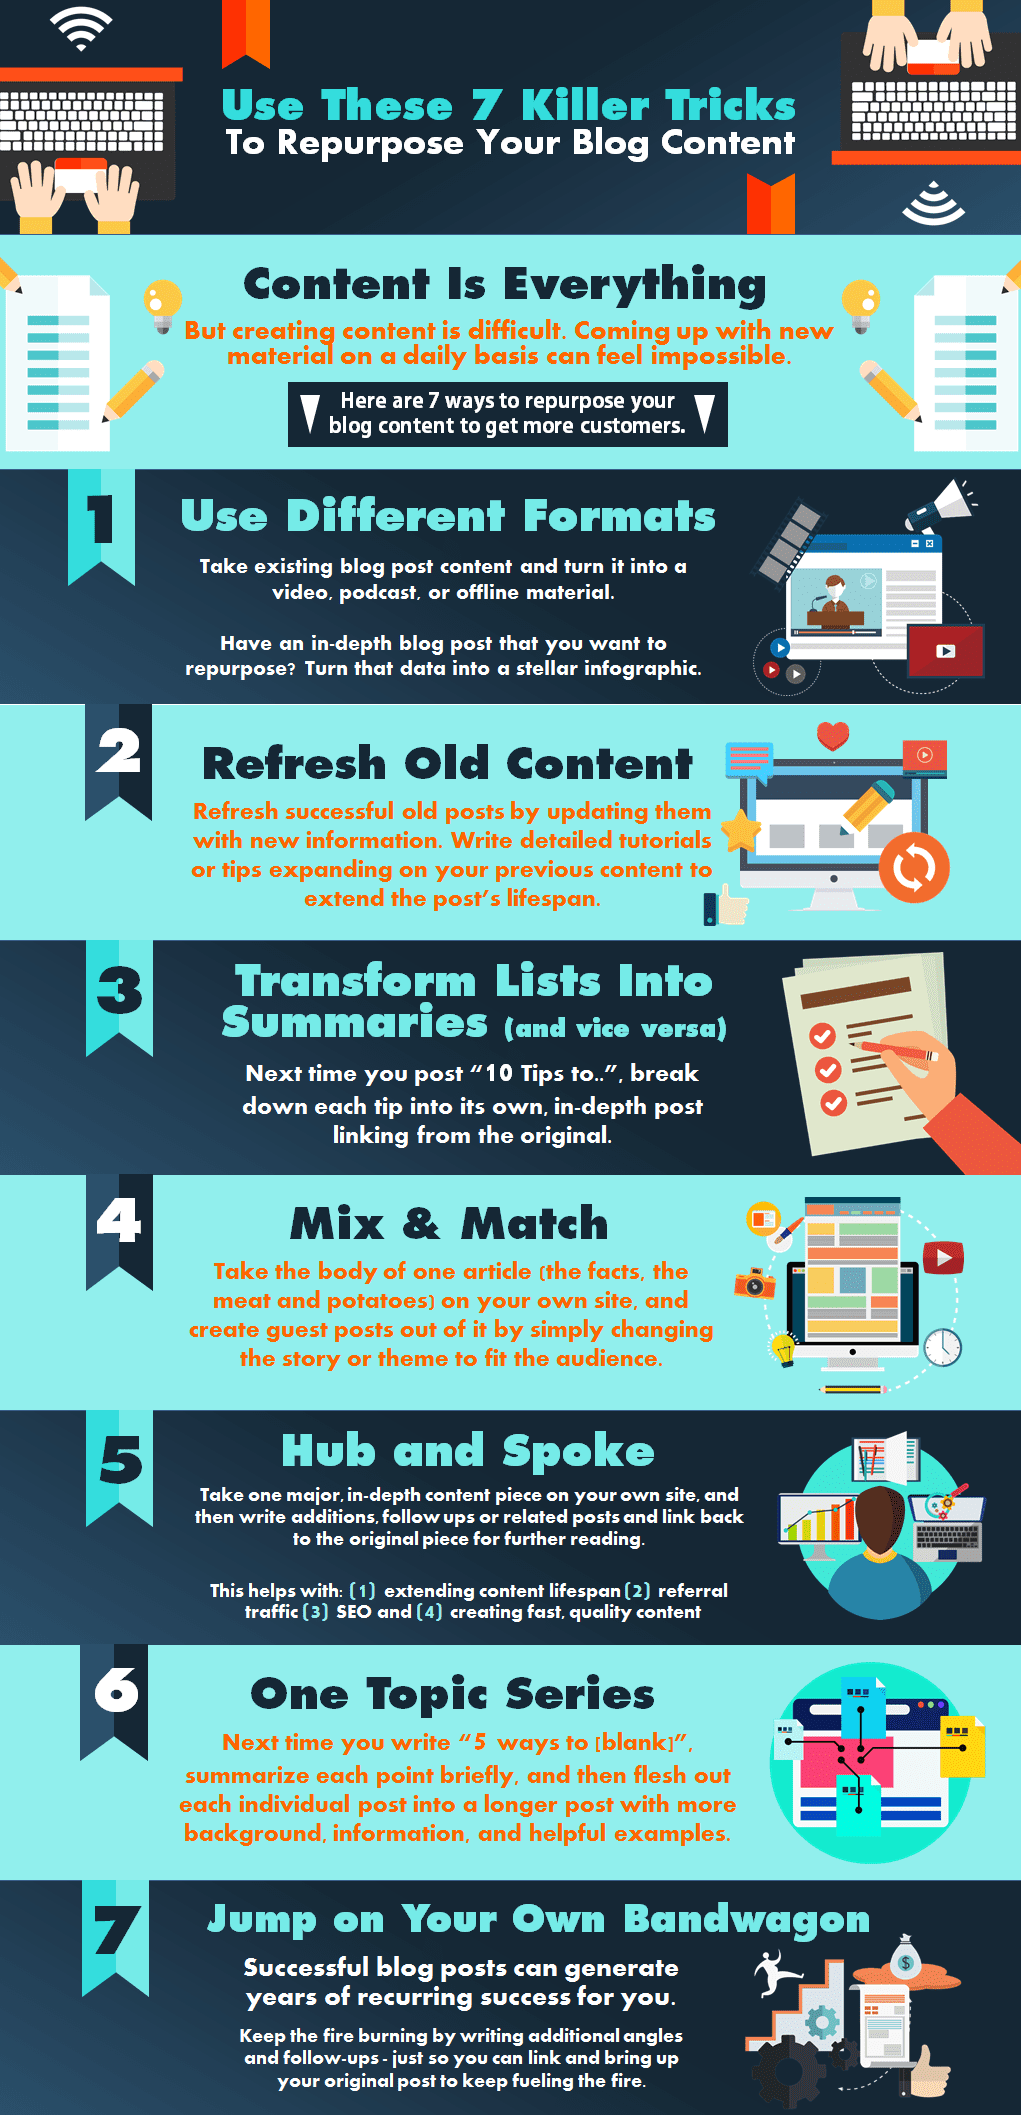 For more tips (and tricks) on how to repurpose and gain content visibility for your old blogs, check out this great infographic.